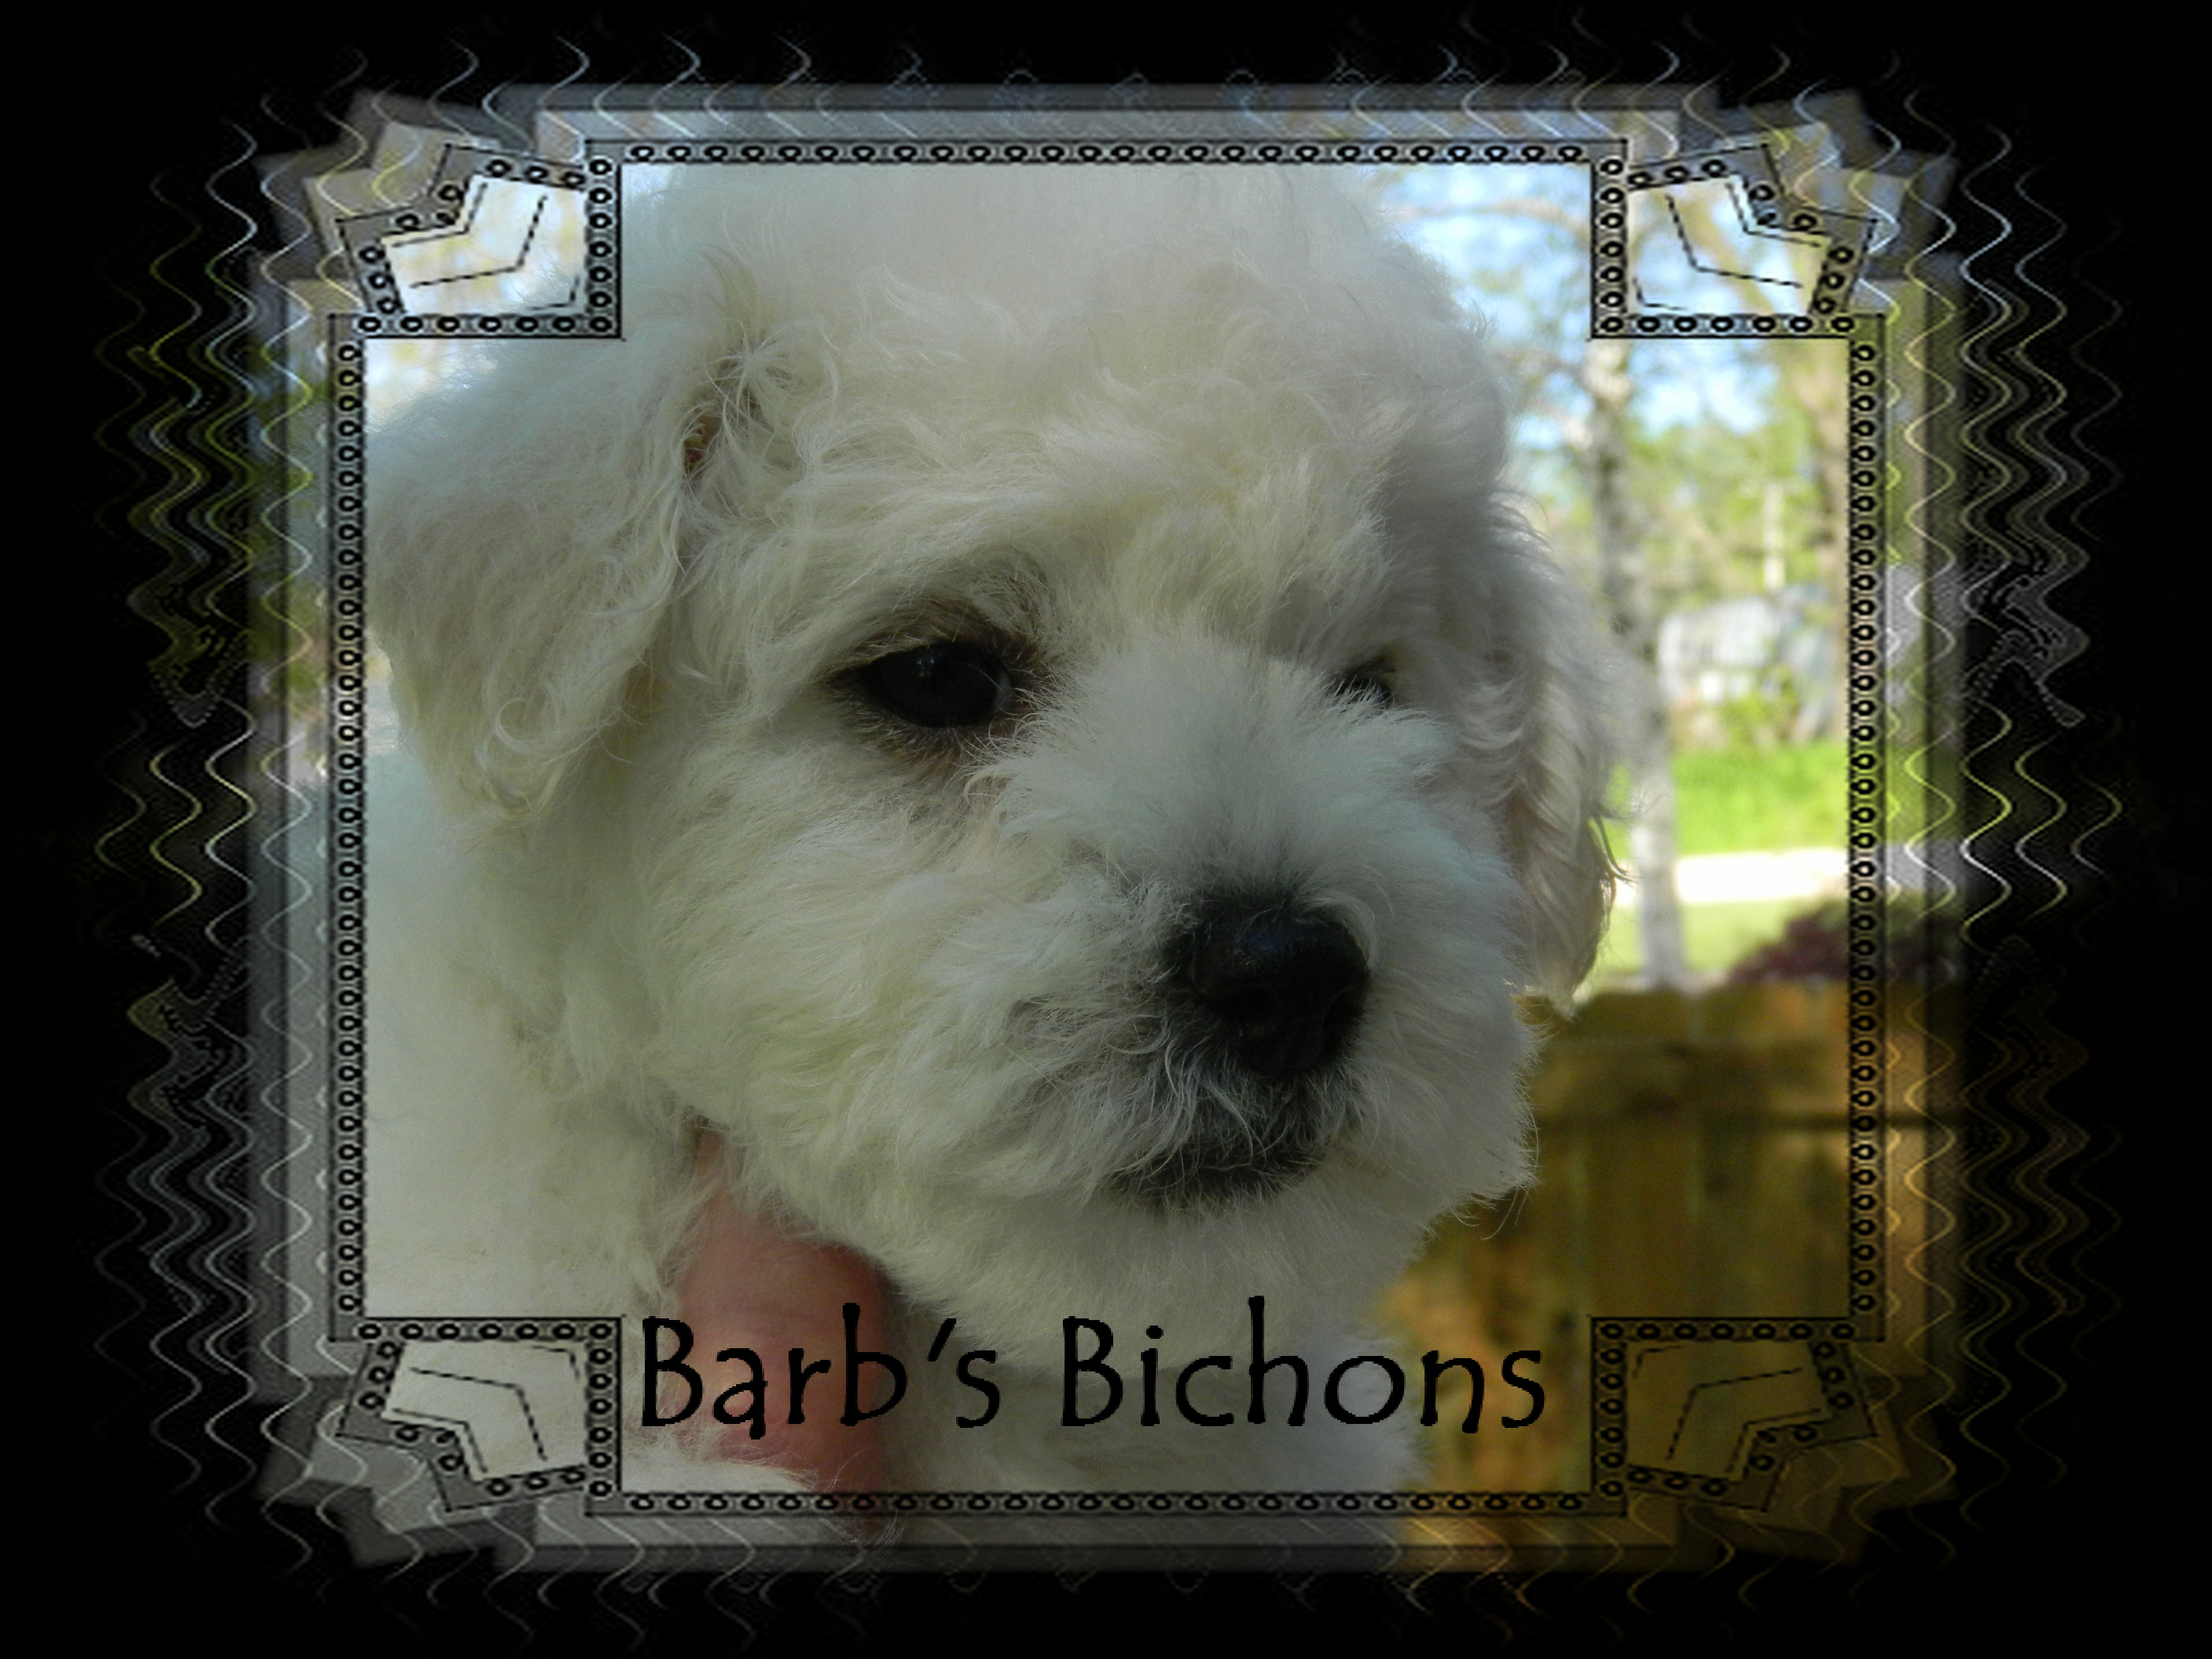 Champion sired female Bichon Frise puppy